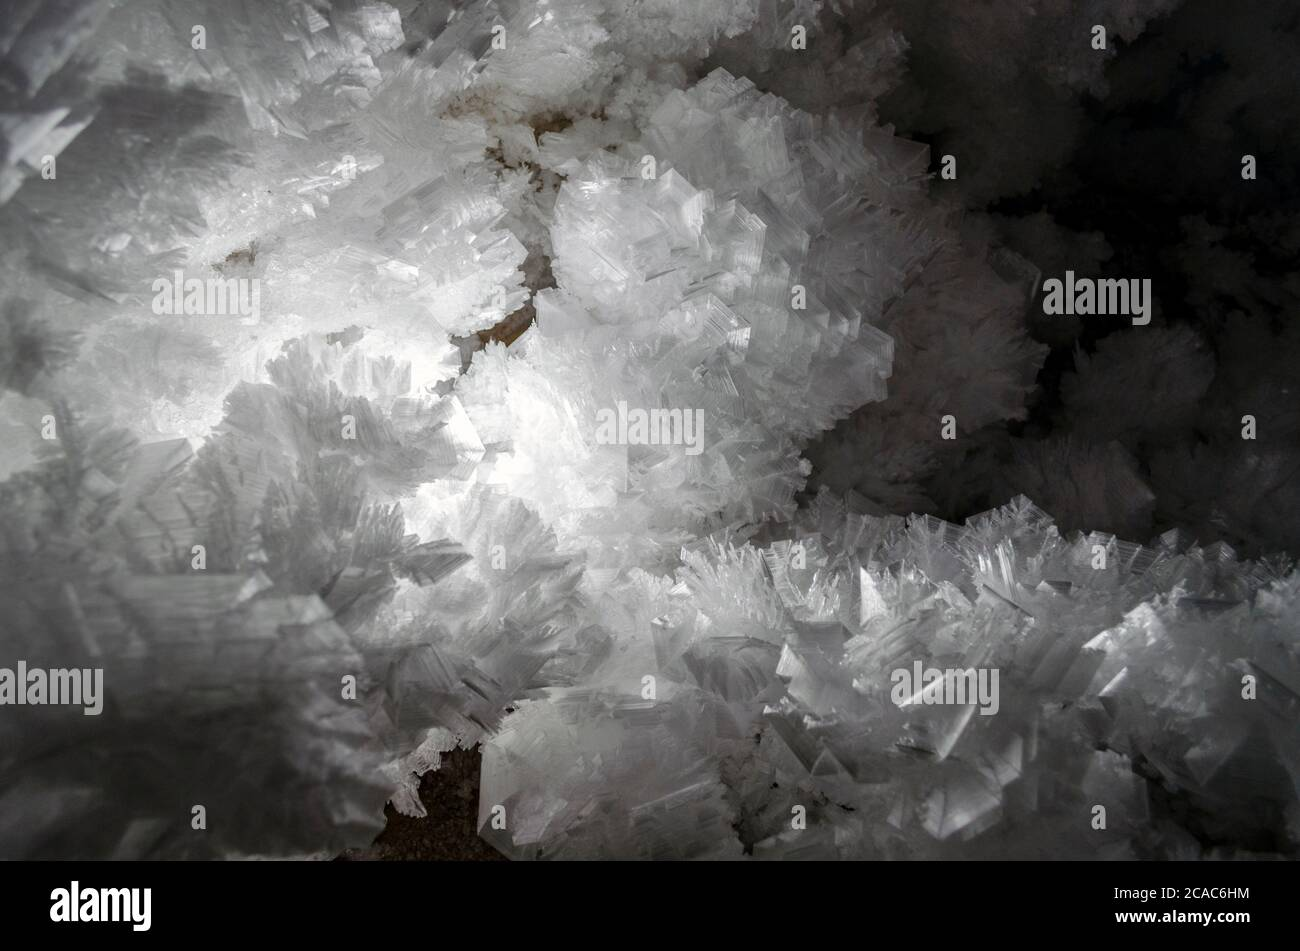 Snowflakes, pieces of ice, drizzle, snowy, frozen crystals of water Stock Photo